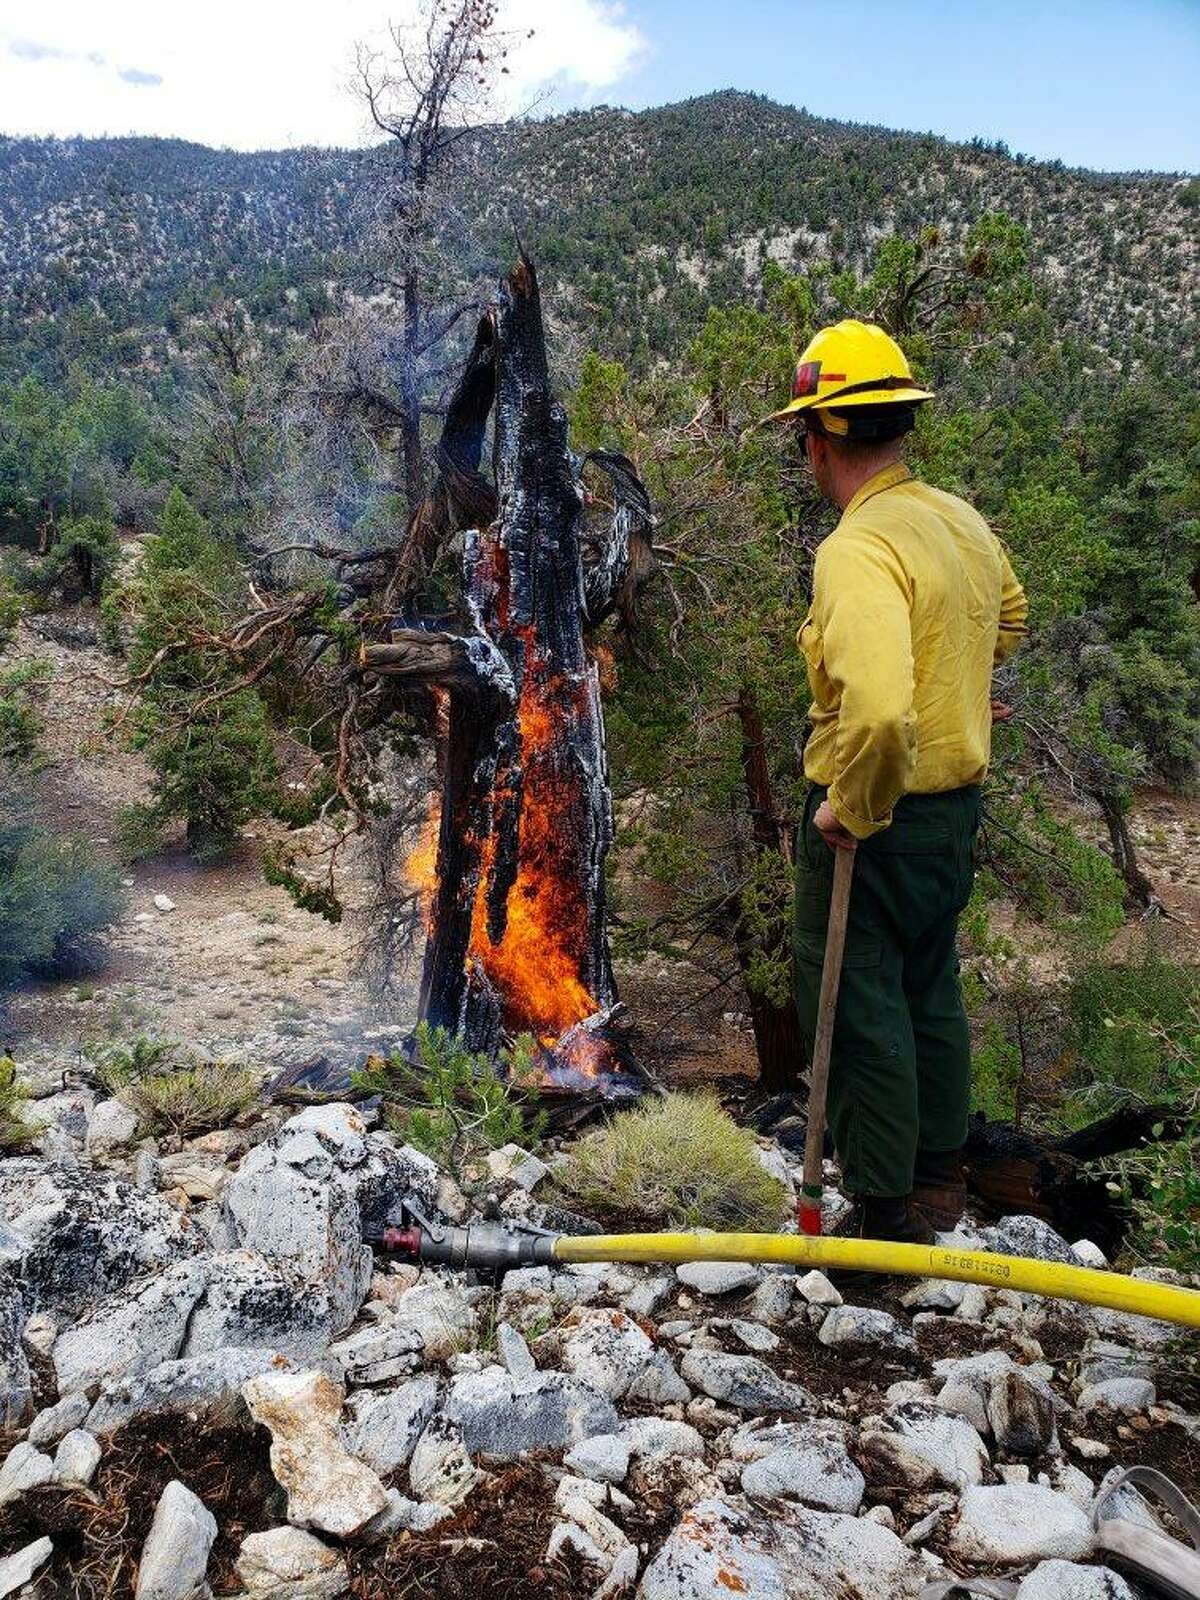 U.S. Forest Service fire crews responded to several lightning strike fires in Southern California this weekend.